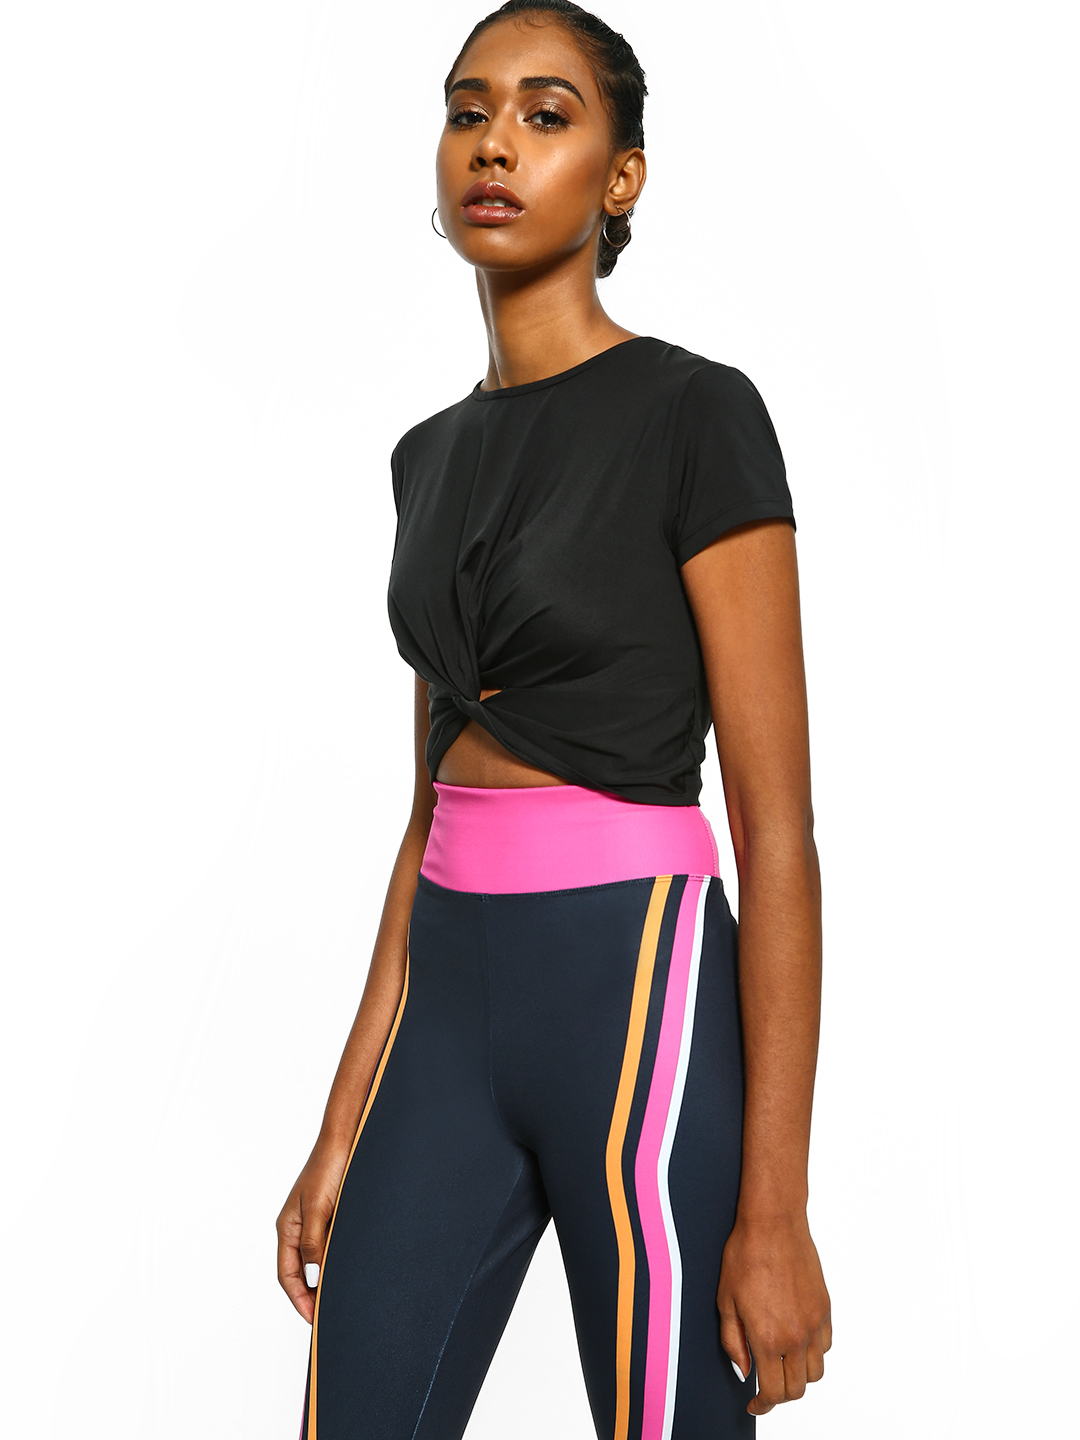 K ACTIVE Jet Black KOOVS Twist Knot Front Crop Top 1